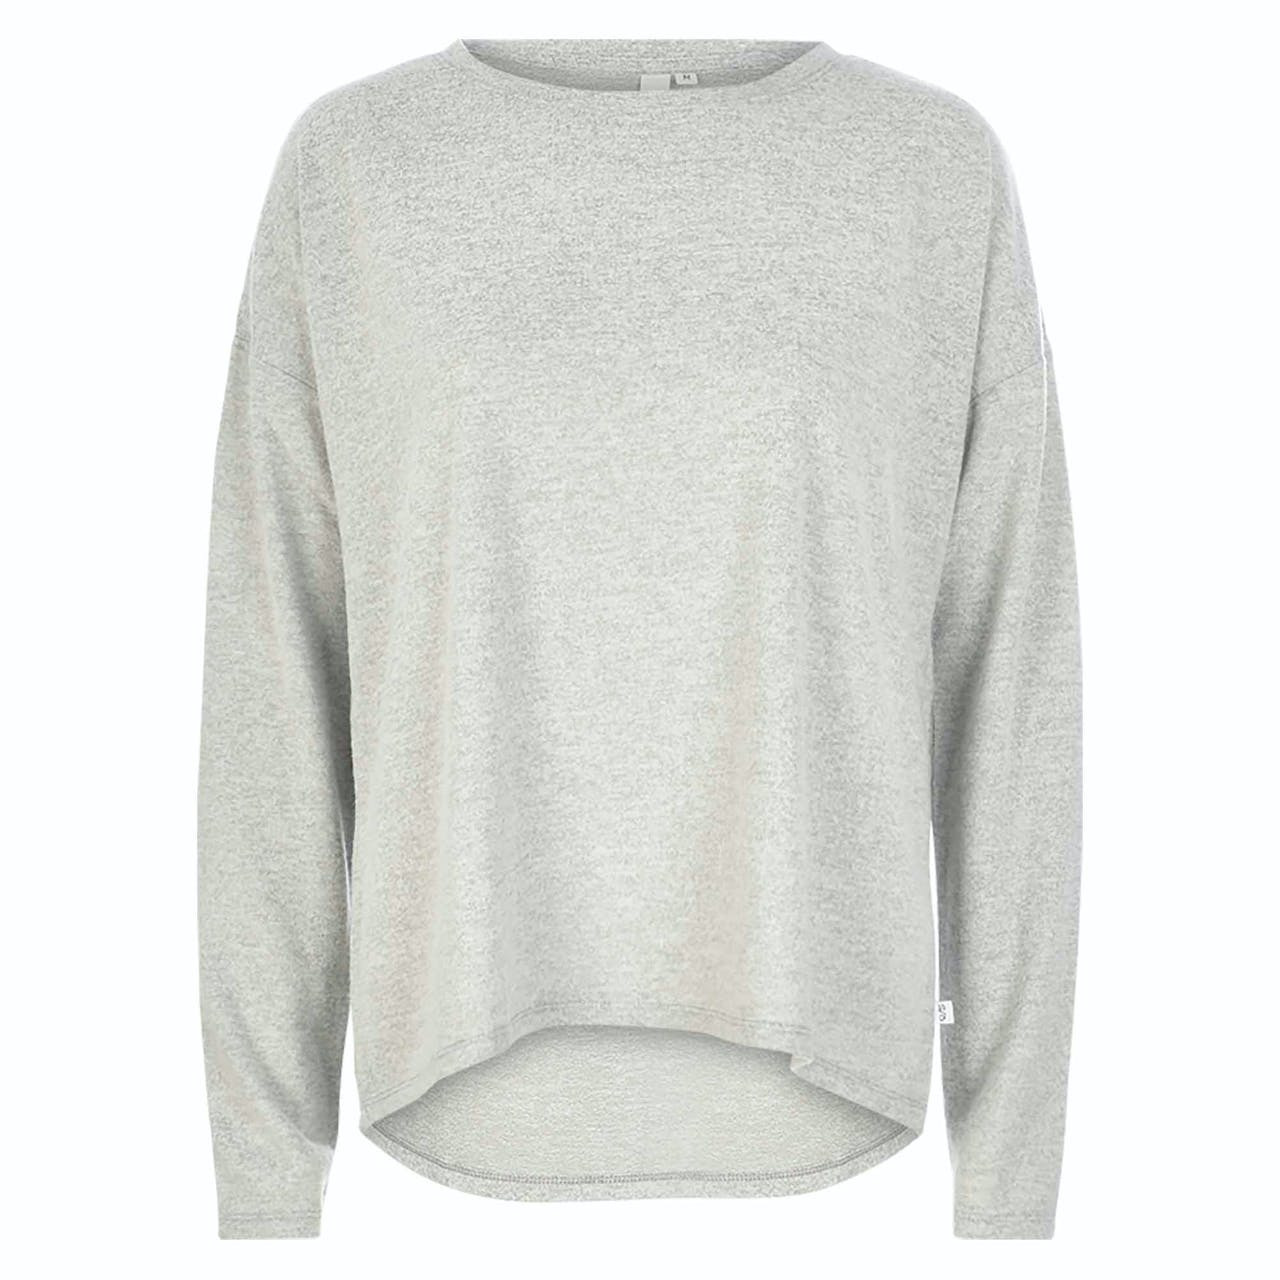 Shirt - Loose Fit - Crewneck